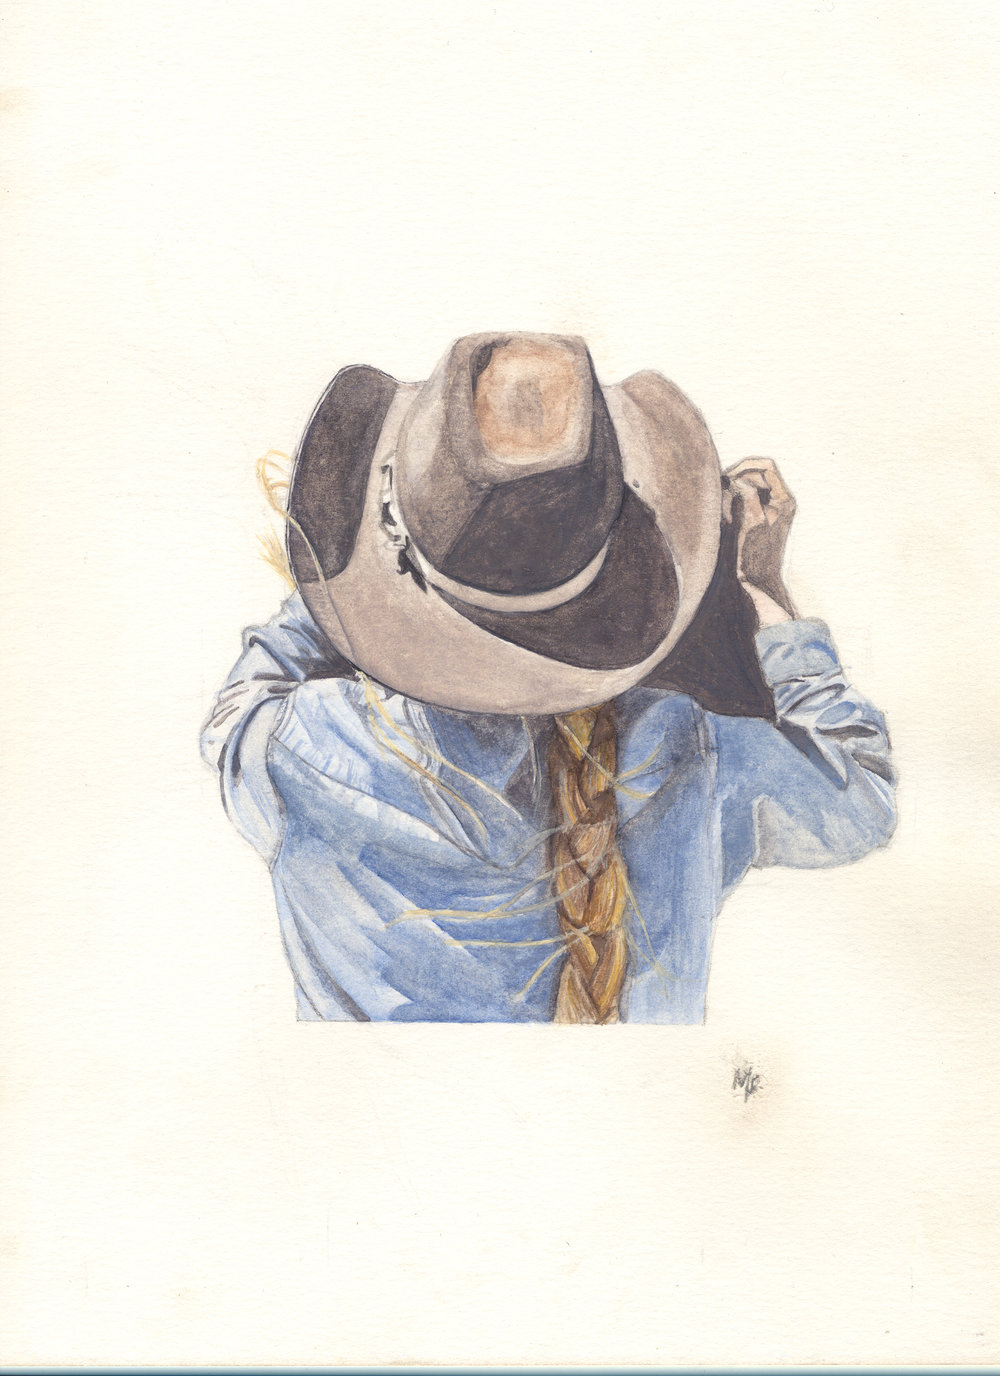 Cora (quick Release) | Women of the west | watercolor series by western artist Melissa DiNino | montana